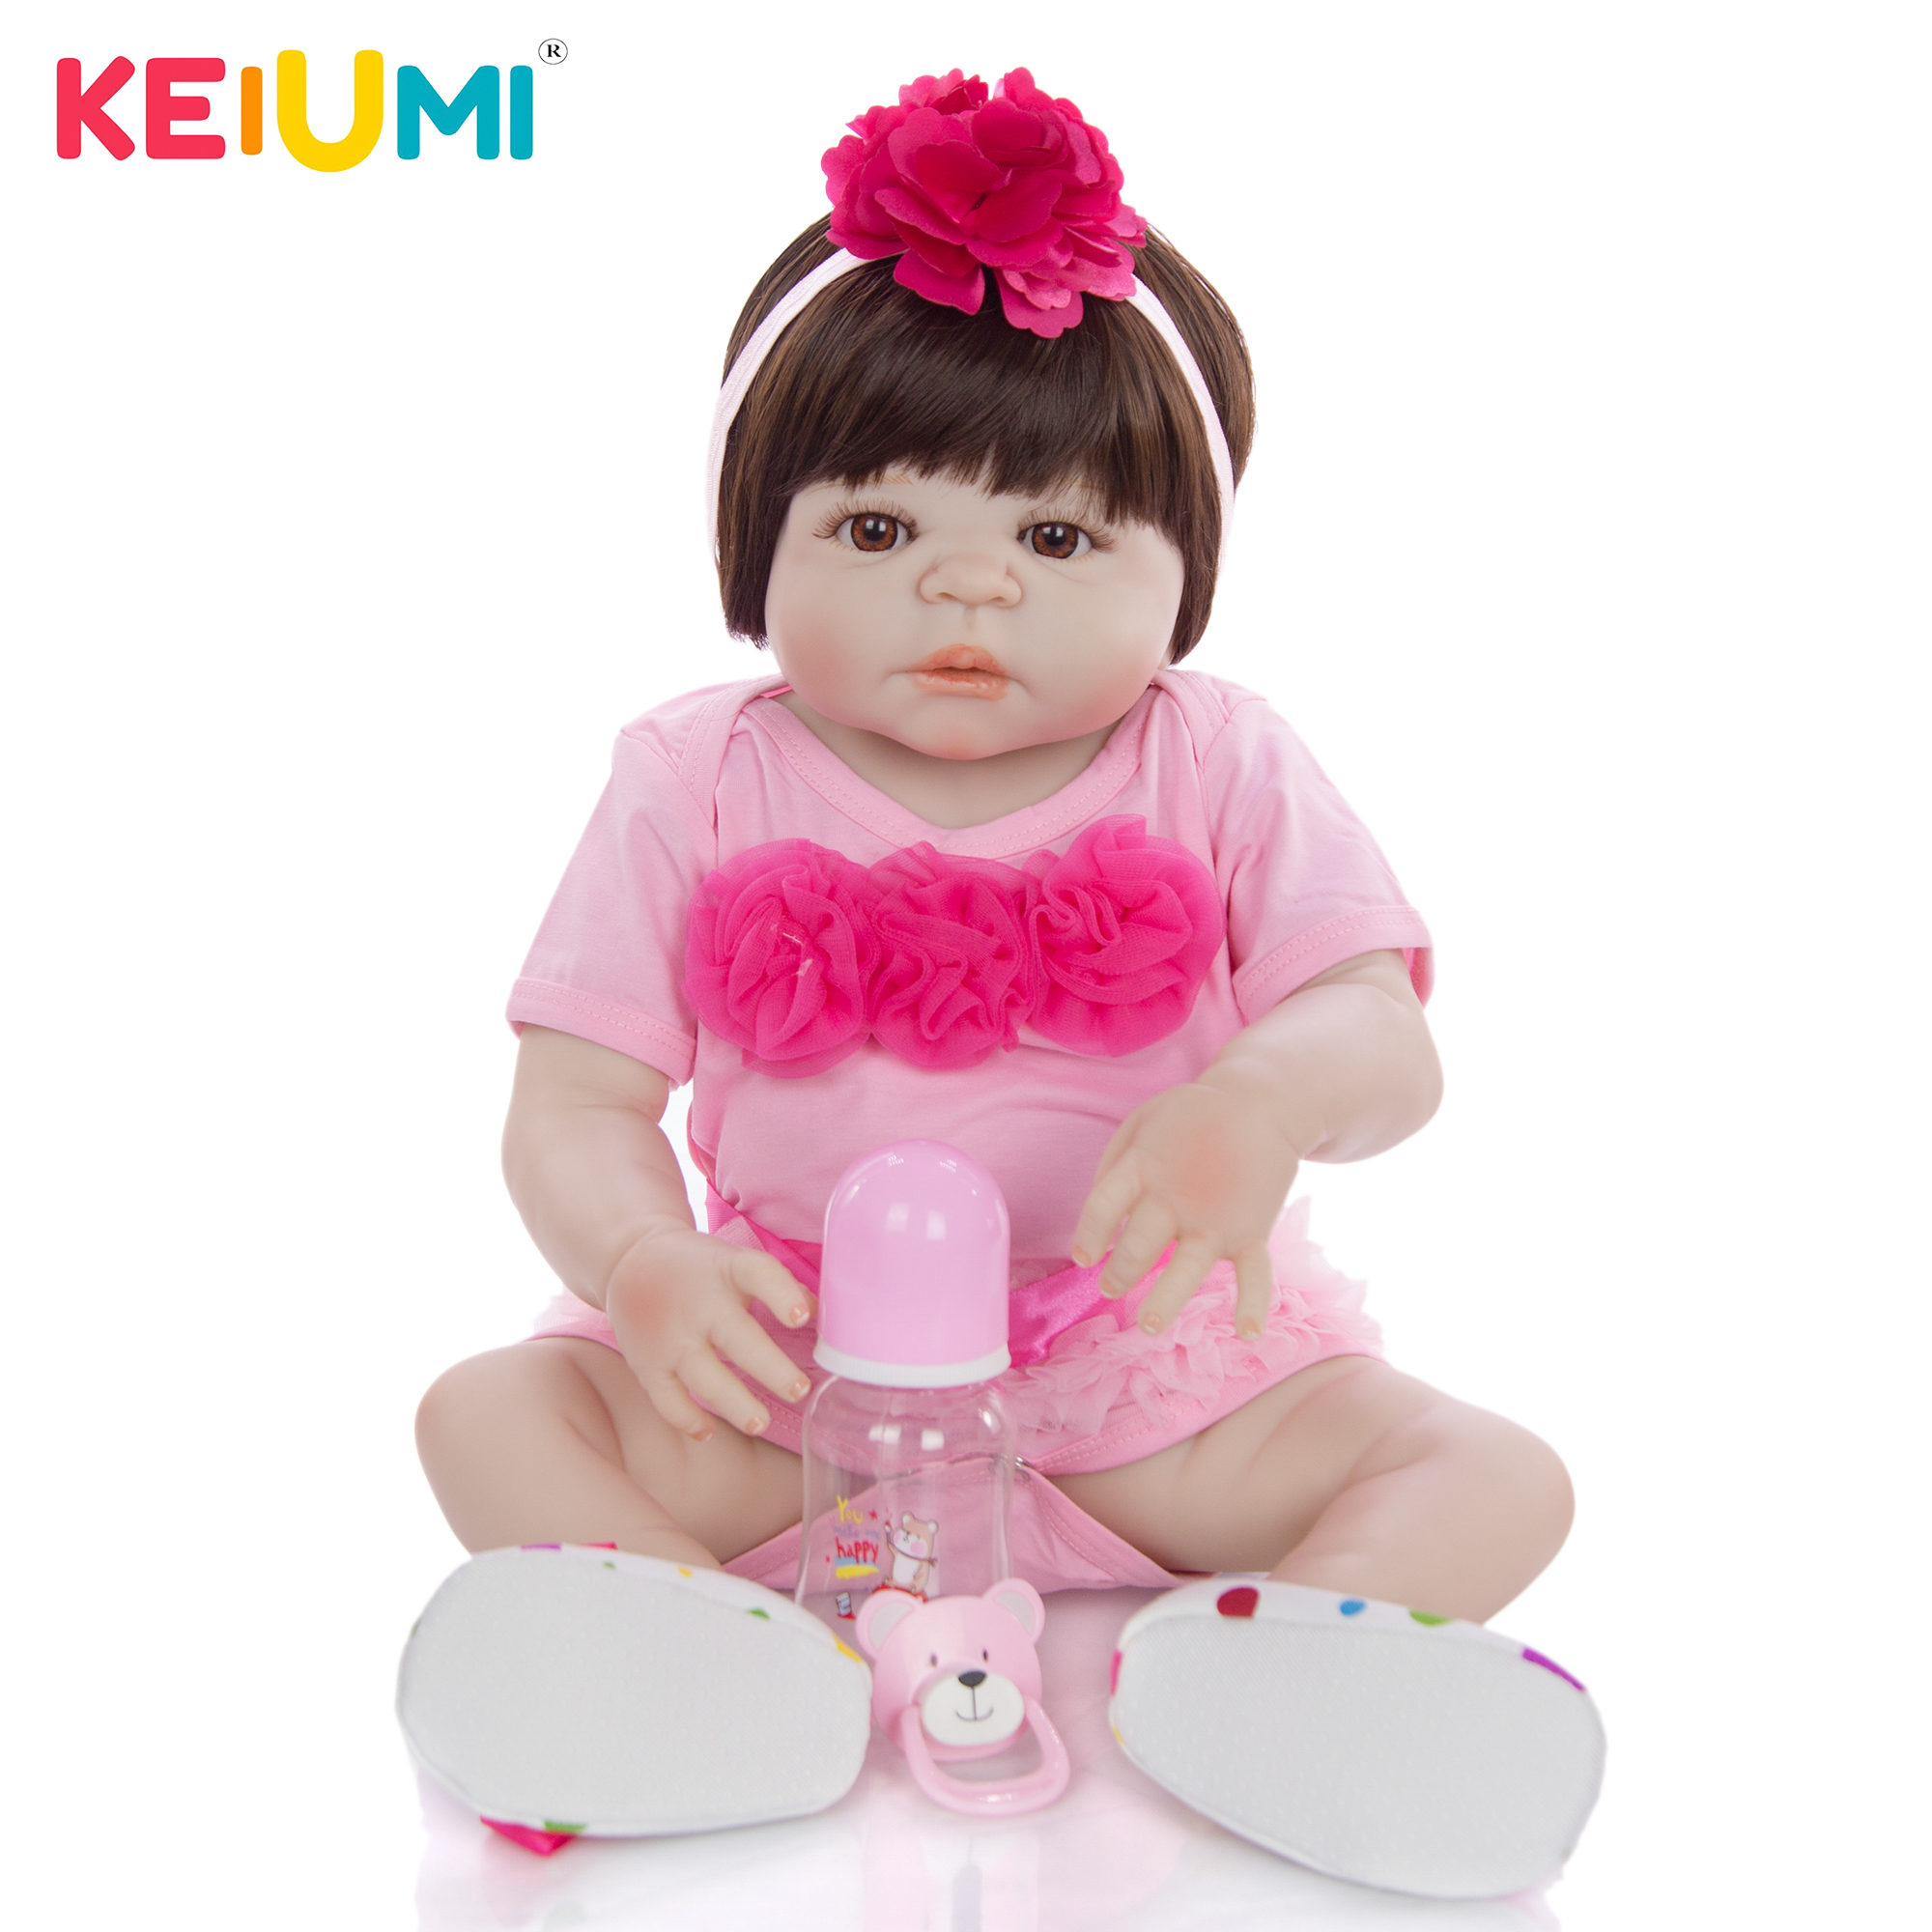 23 Inch Baby Reborn Full Silicone 57 cm Fashion Newborn Baby Doll Lifelike Simulation Doll Toy